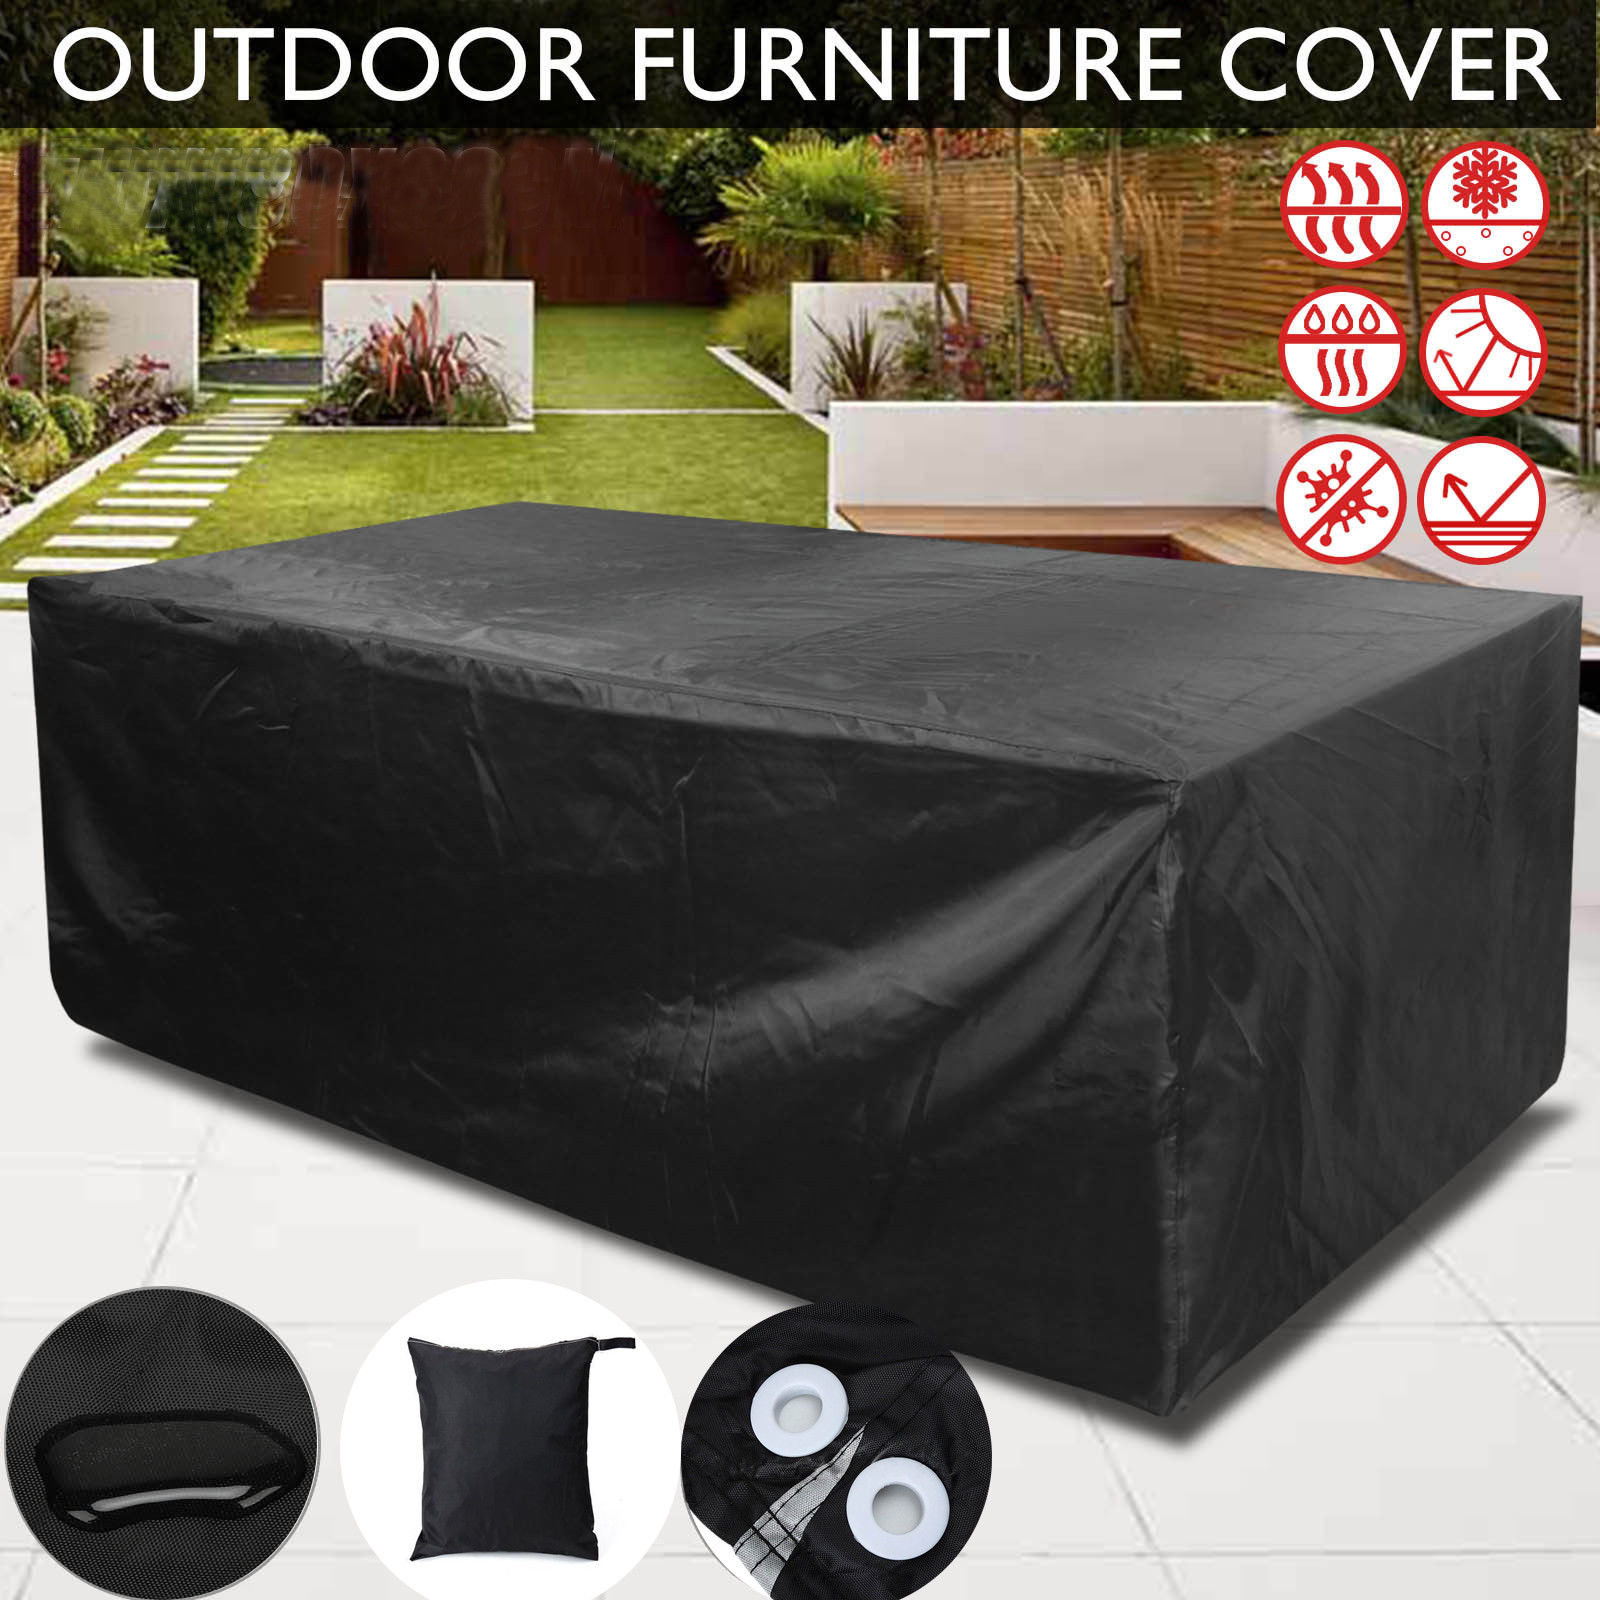 Waterproof Garden Sofa Covers Blair Kidney Outdoor Cover